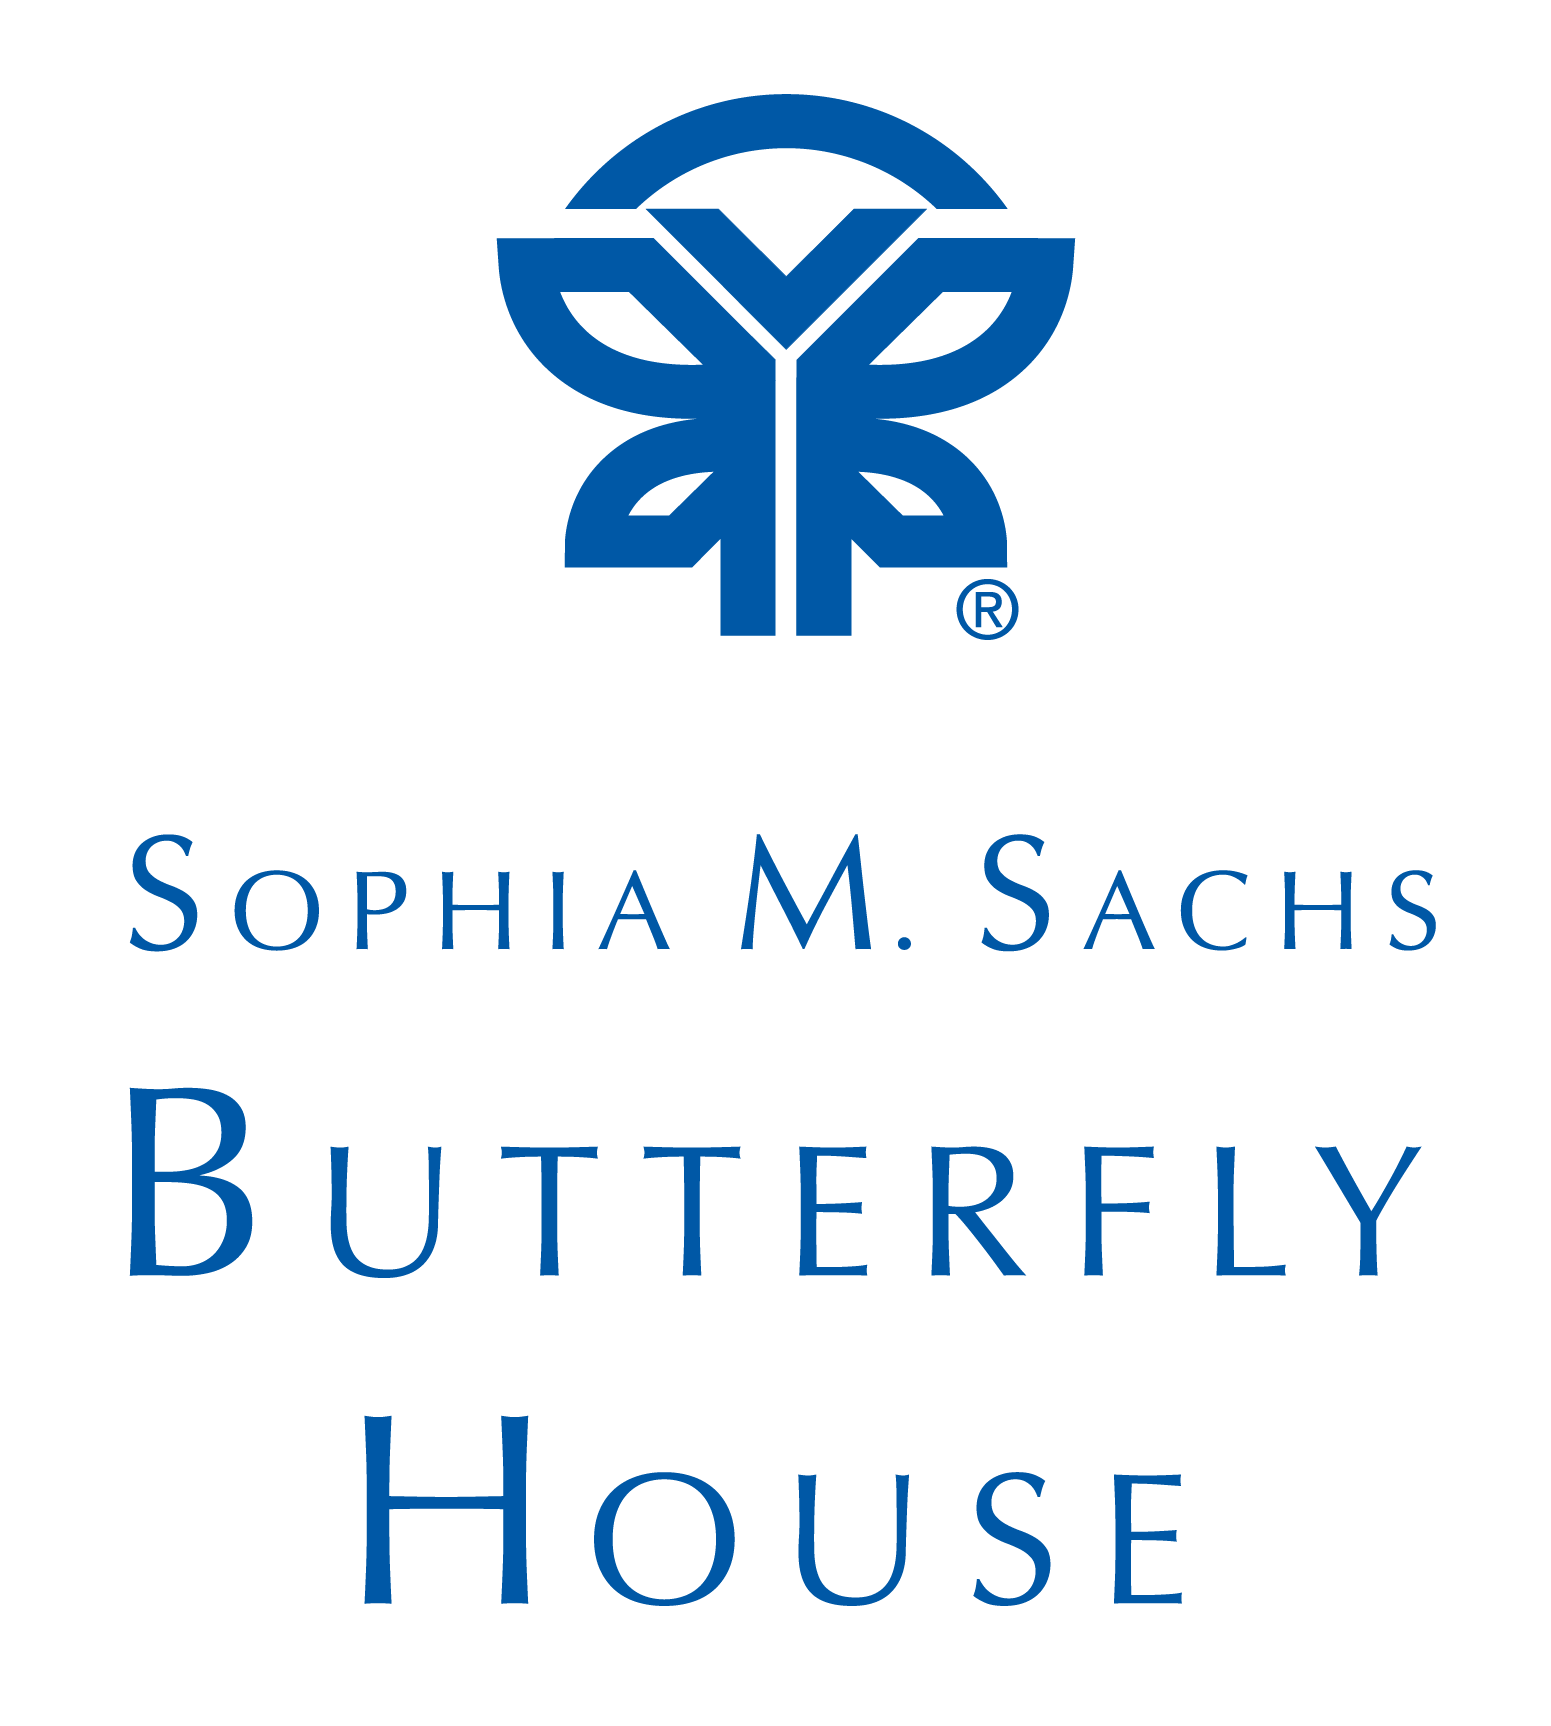 Butterfly House logo